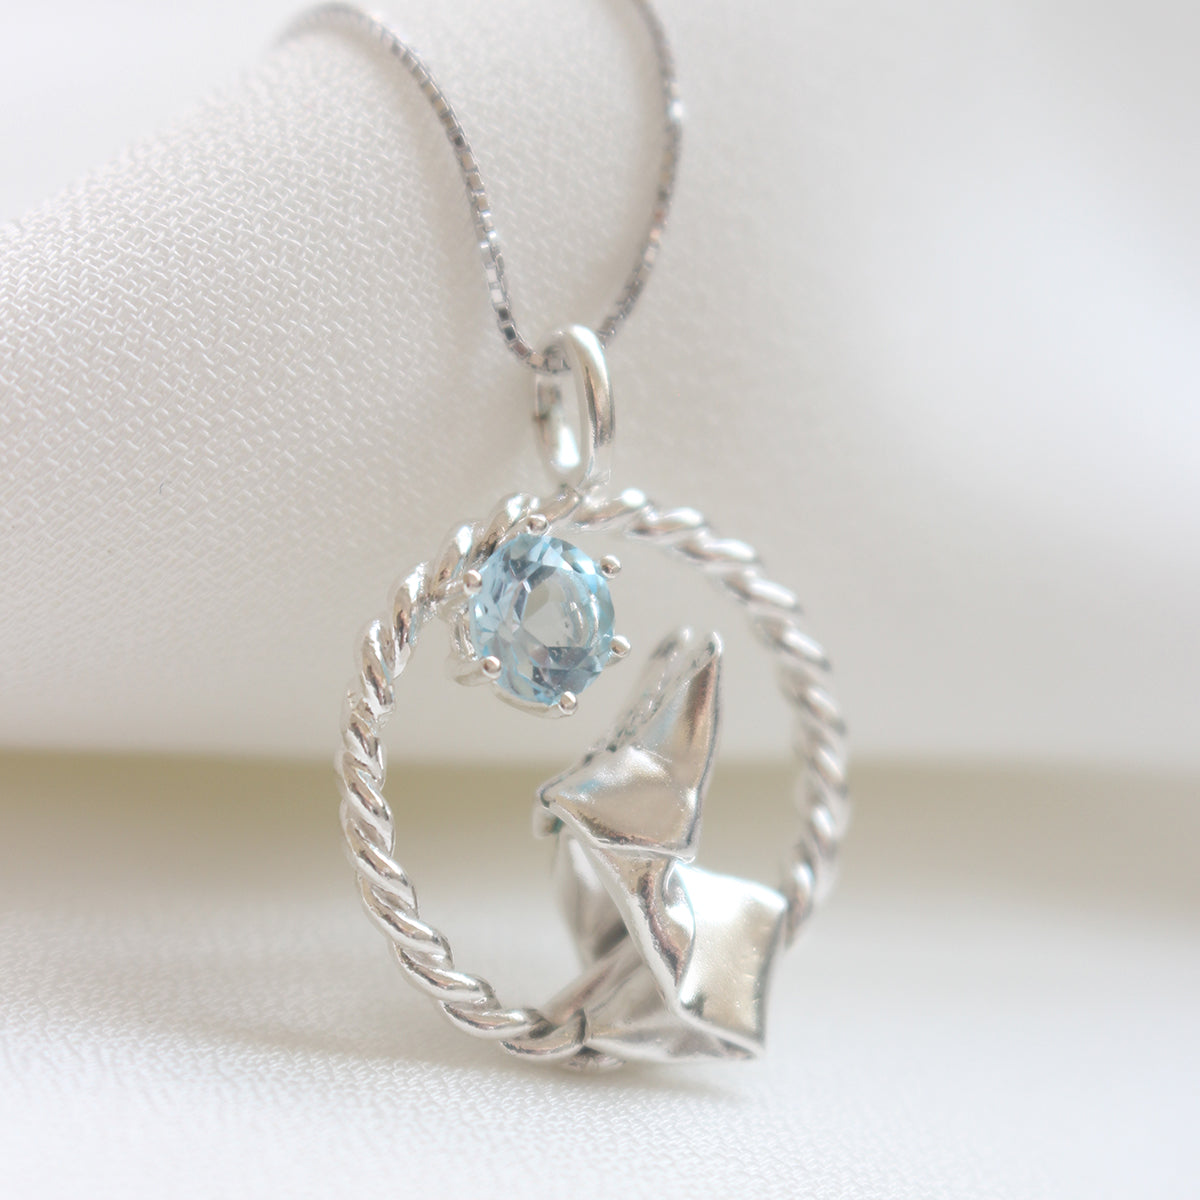 Origami Moon Rabbit with Sky Blue Topaz Necklace